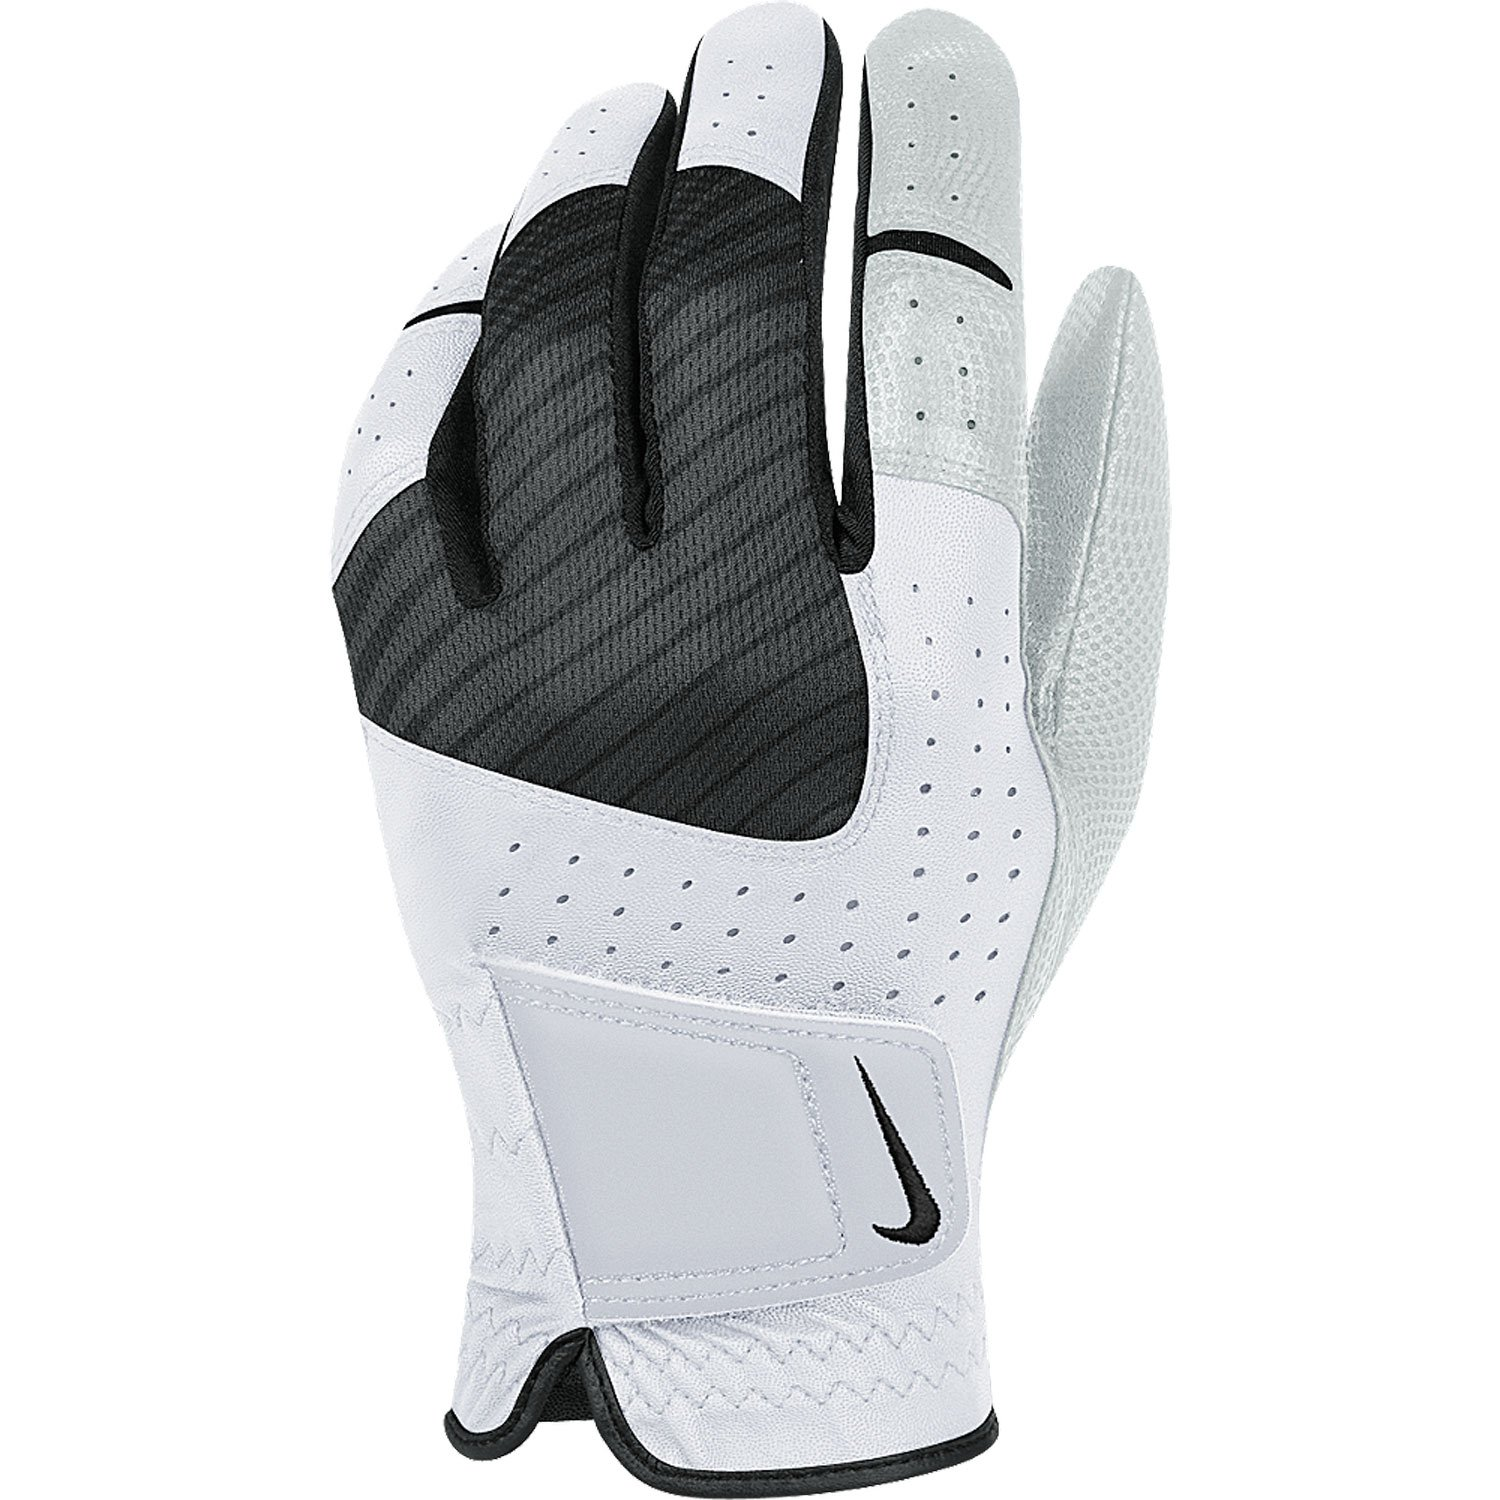 Nike Golf Tech Xtreme V Regular Glove (Right), White/Black/Cool Grey